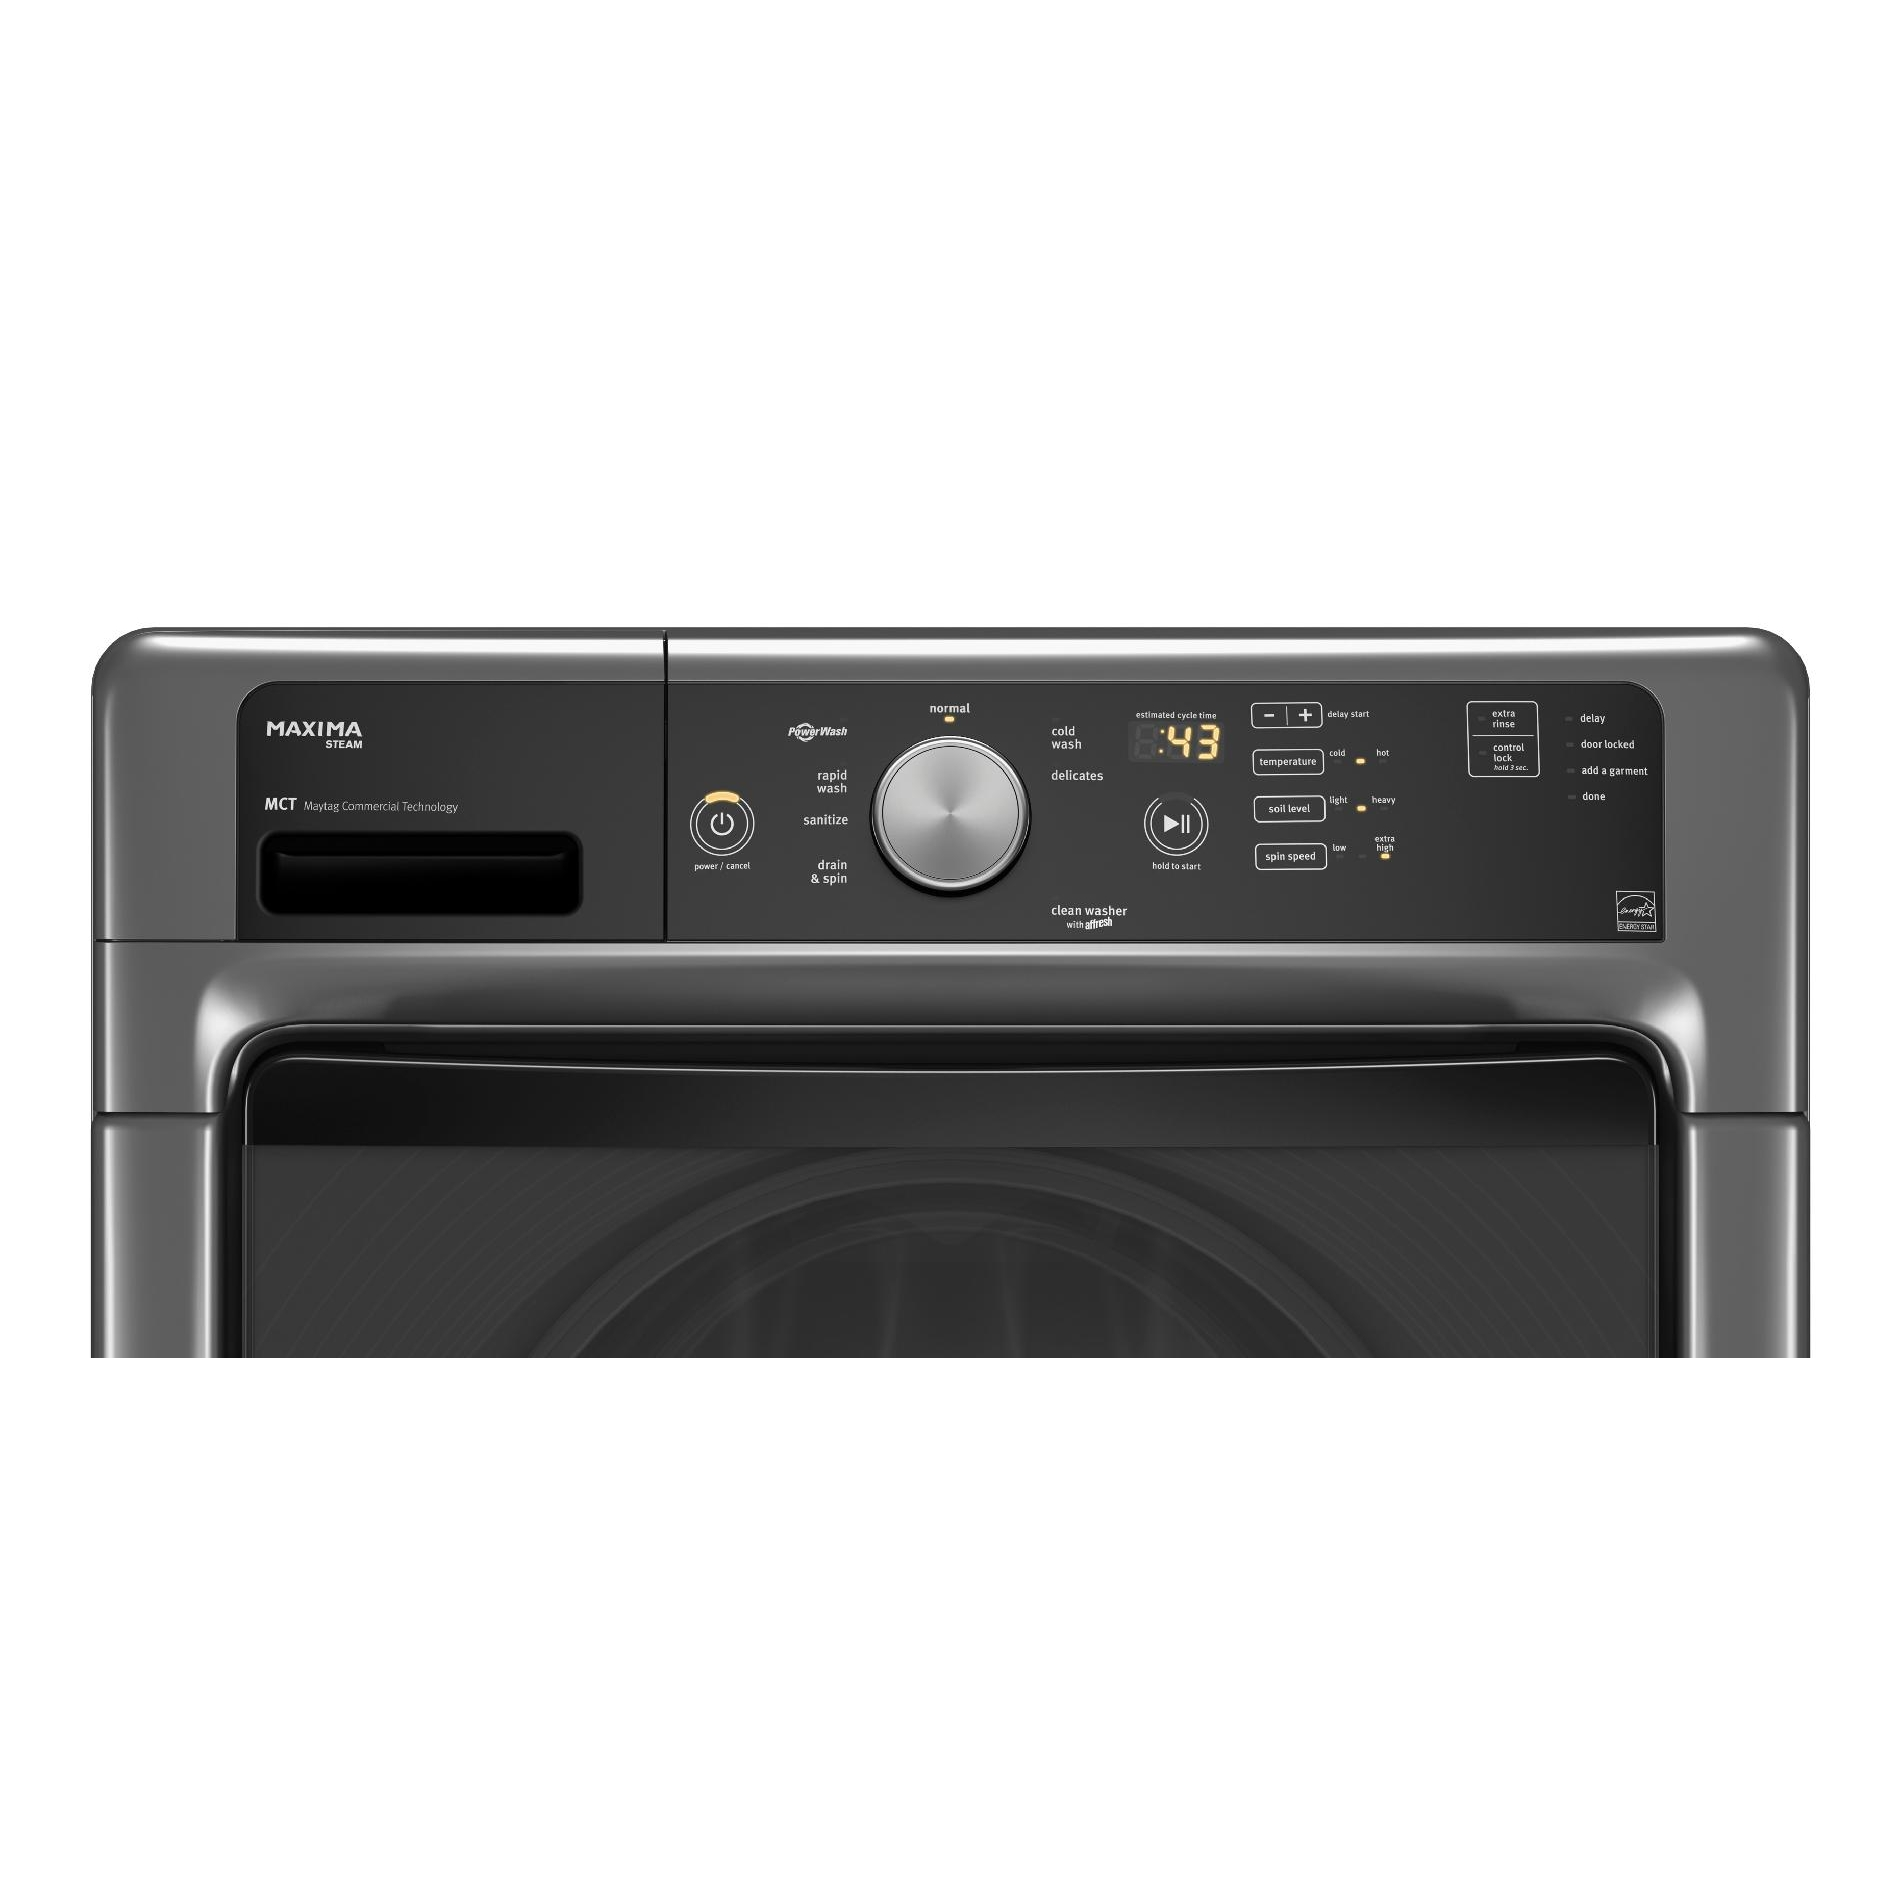 Maytag MHW5100DC 4.5 cu. ft. Maxima® Front-Load Washer w/ Advanced Vibration Control - Metallic Slate